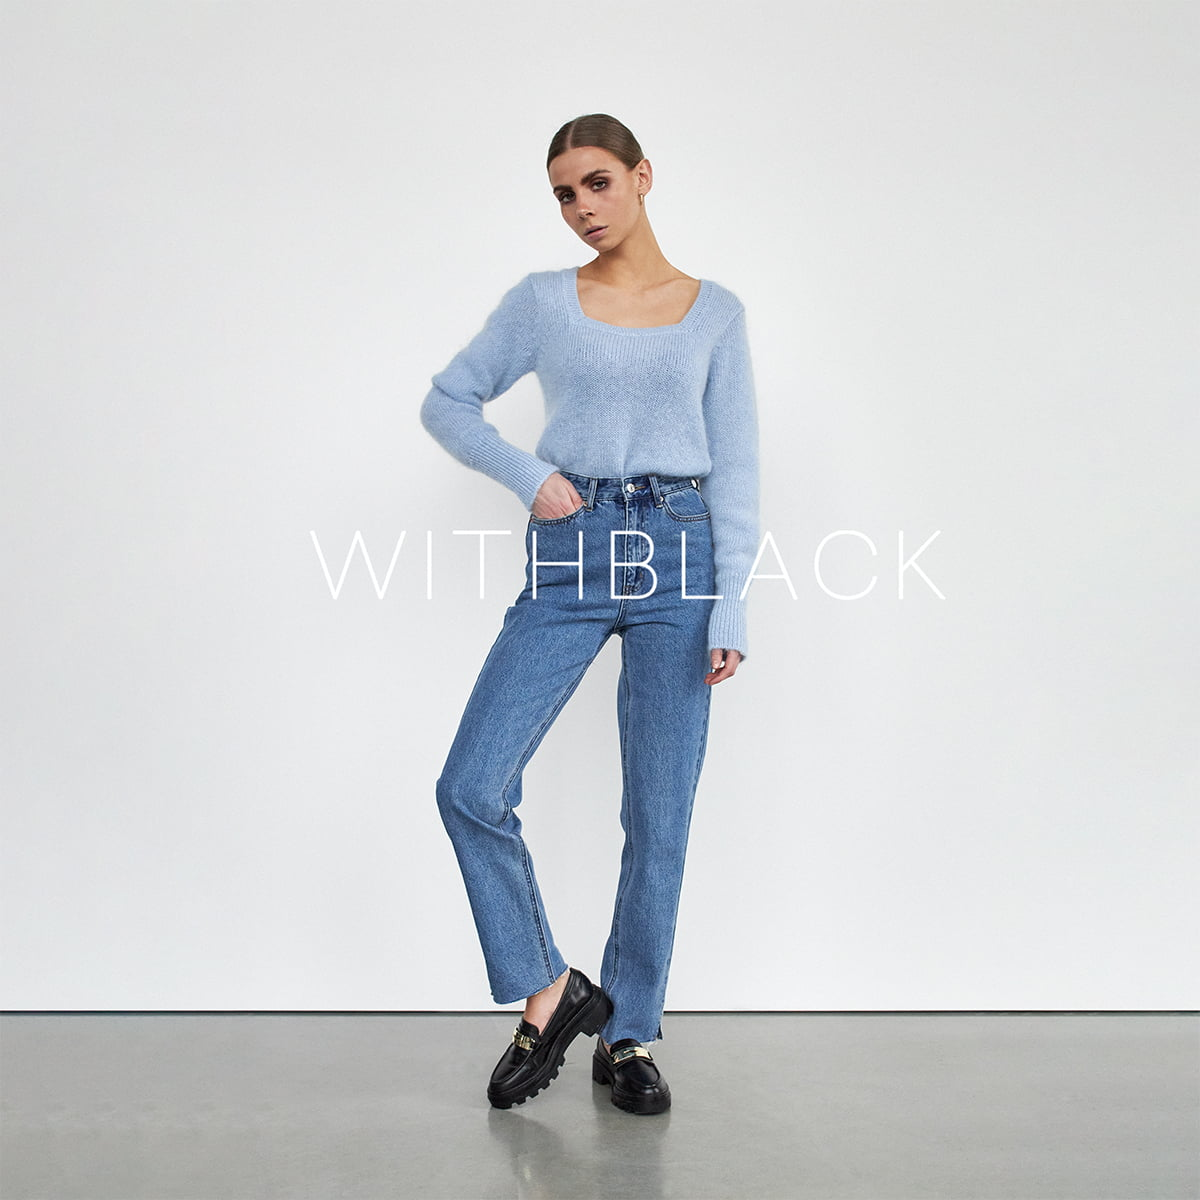 Model with a knit pullover and jeans